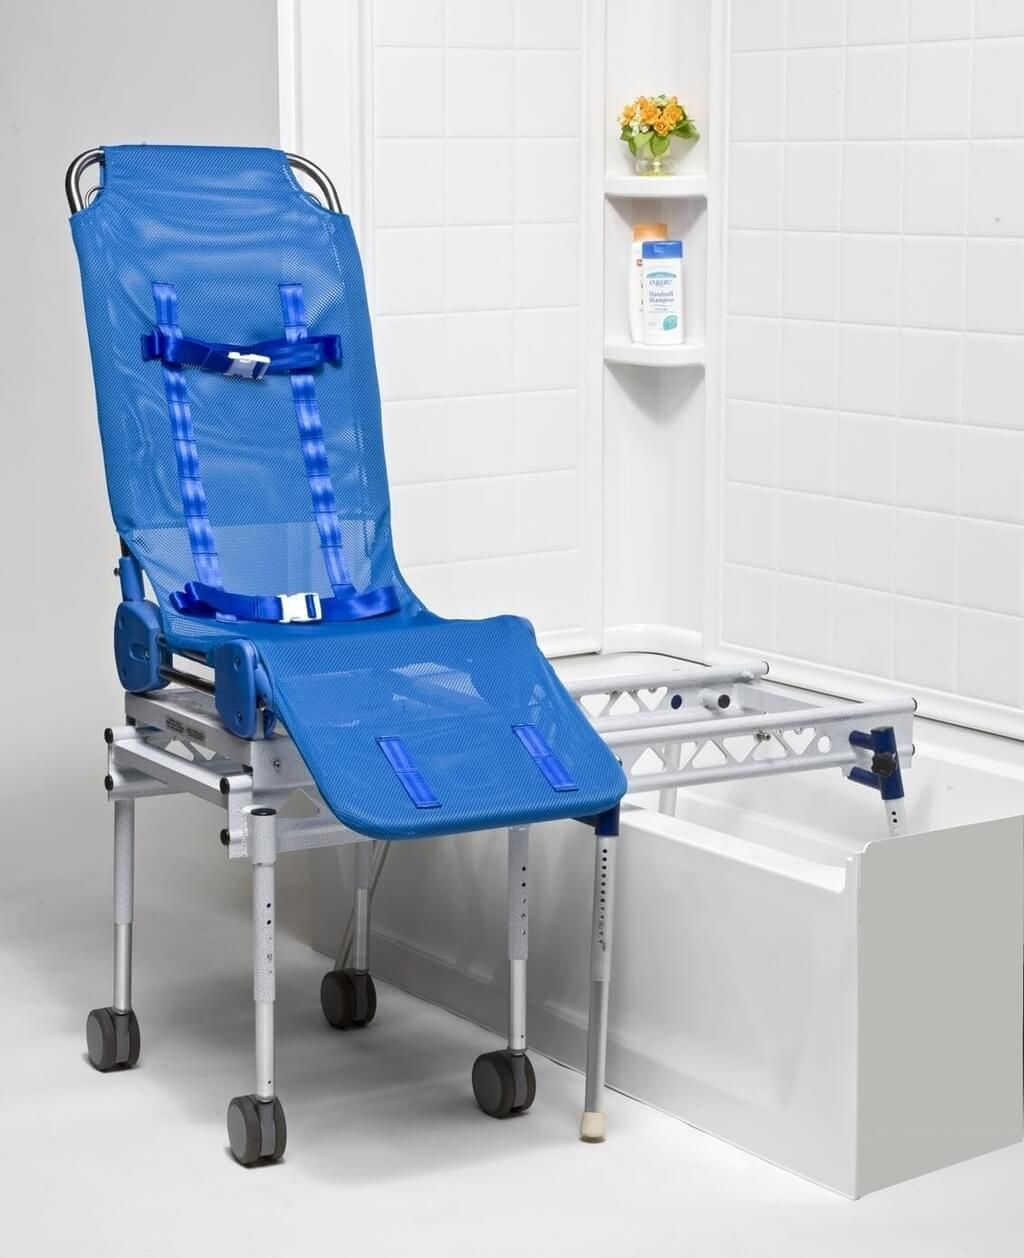 Shower Chair Combo Yahoo Image Search Results Dush